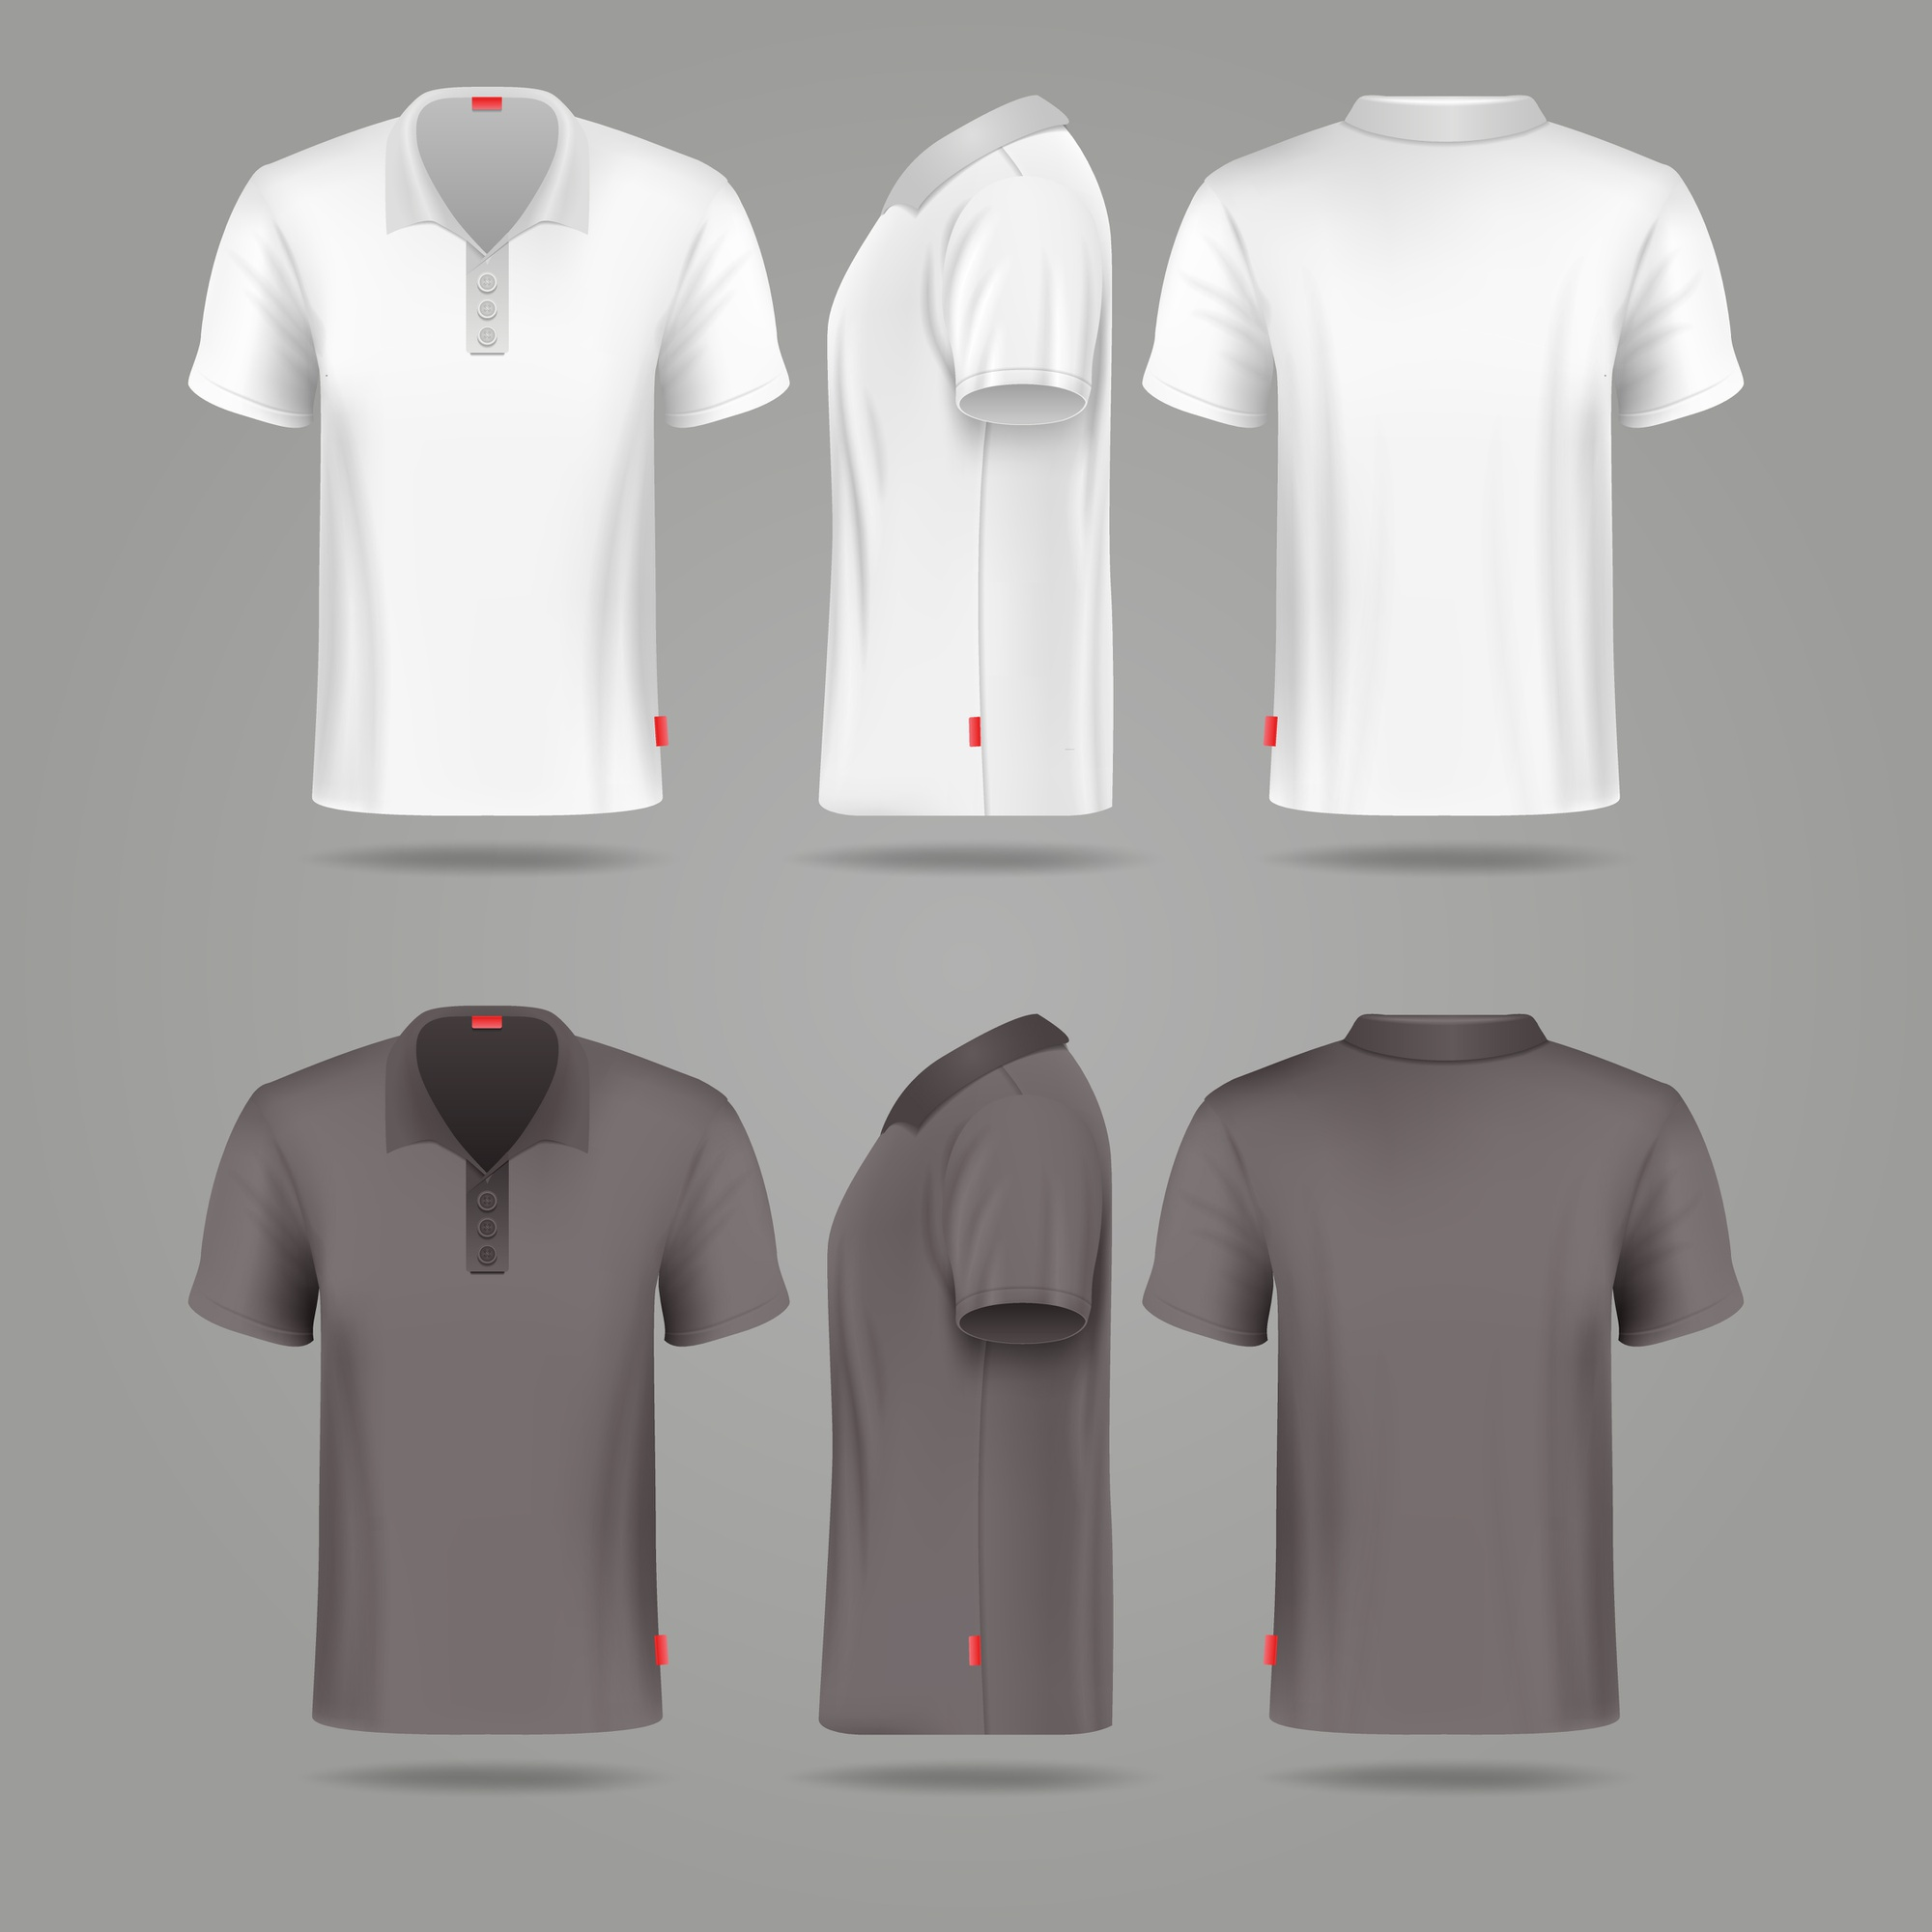 White black mens polo t-shirt front back and side views vector mockups. Template fashion tshirt for